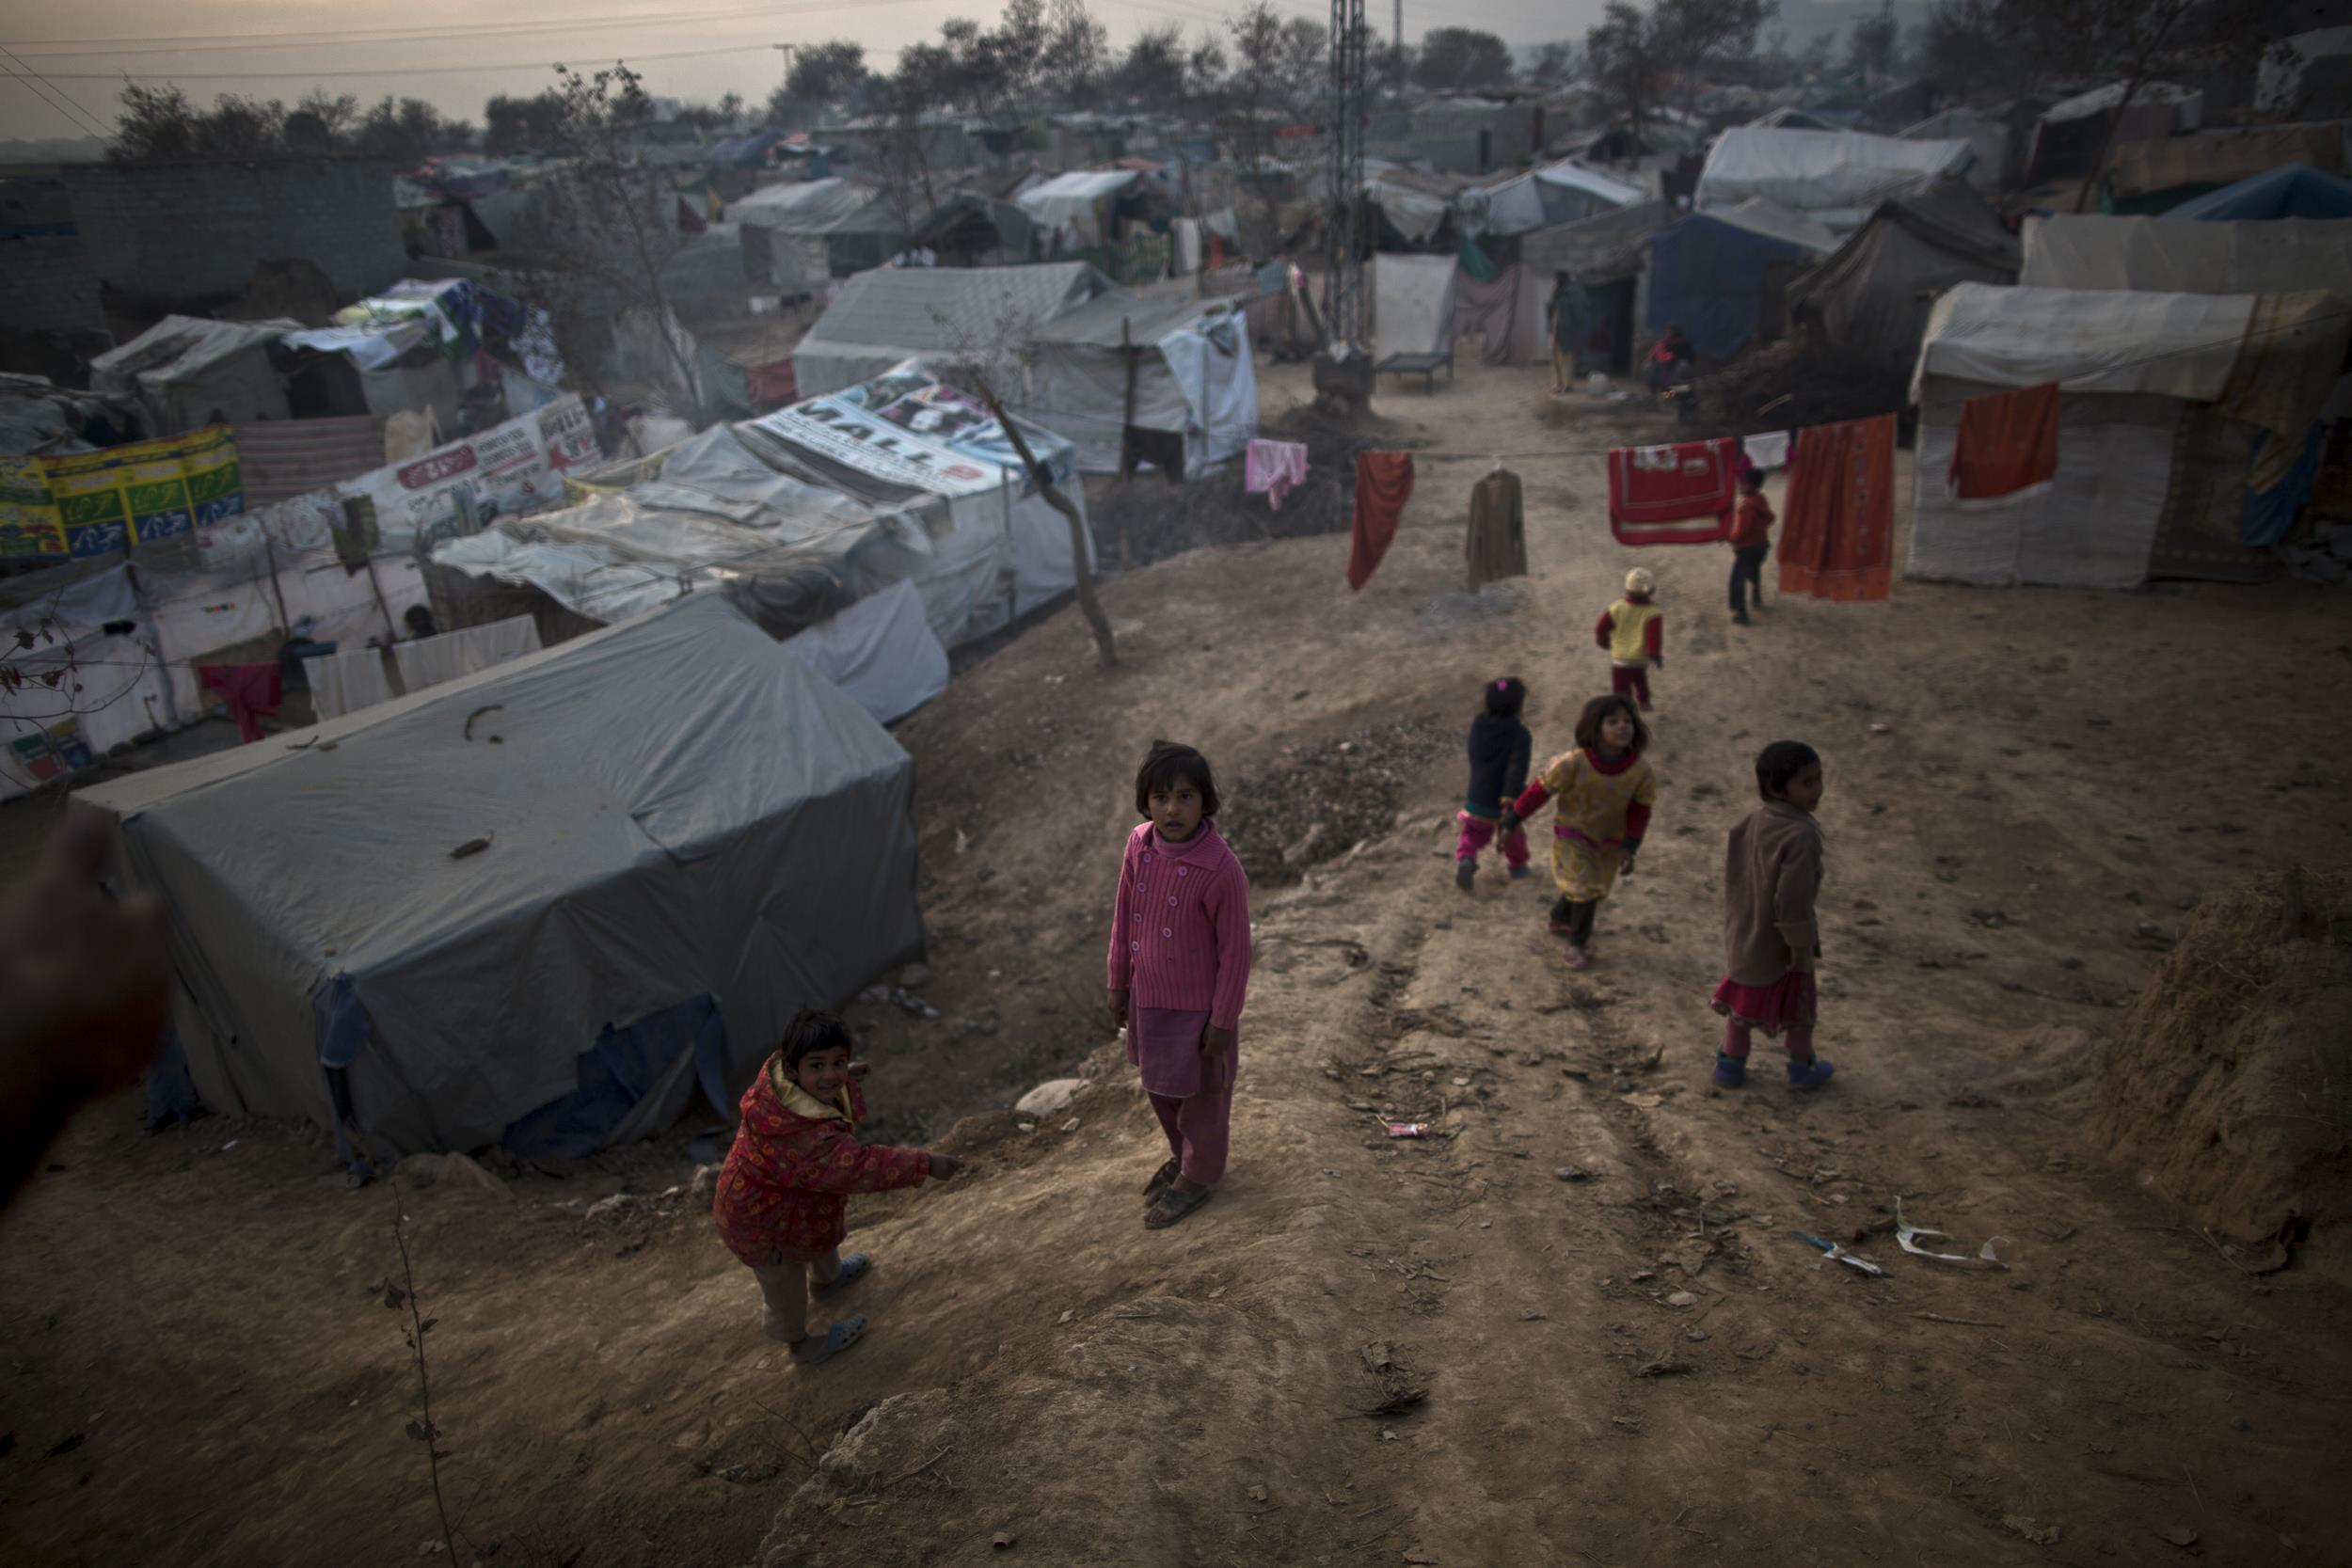 Pakistani Christian children play in a slum that hosts poor Christian families